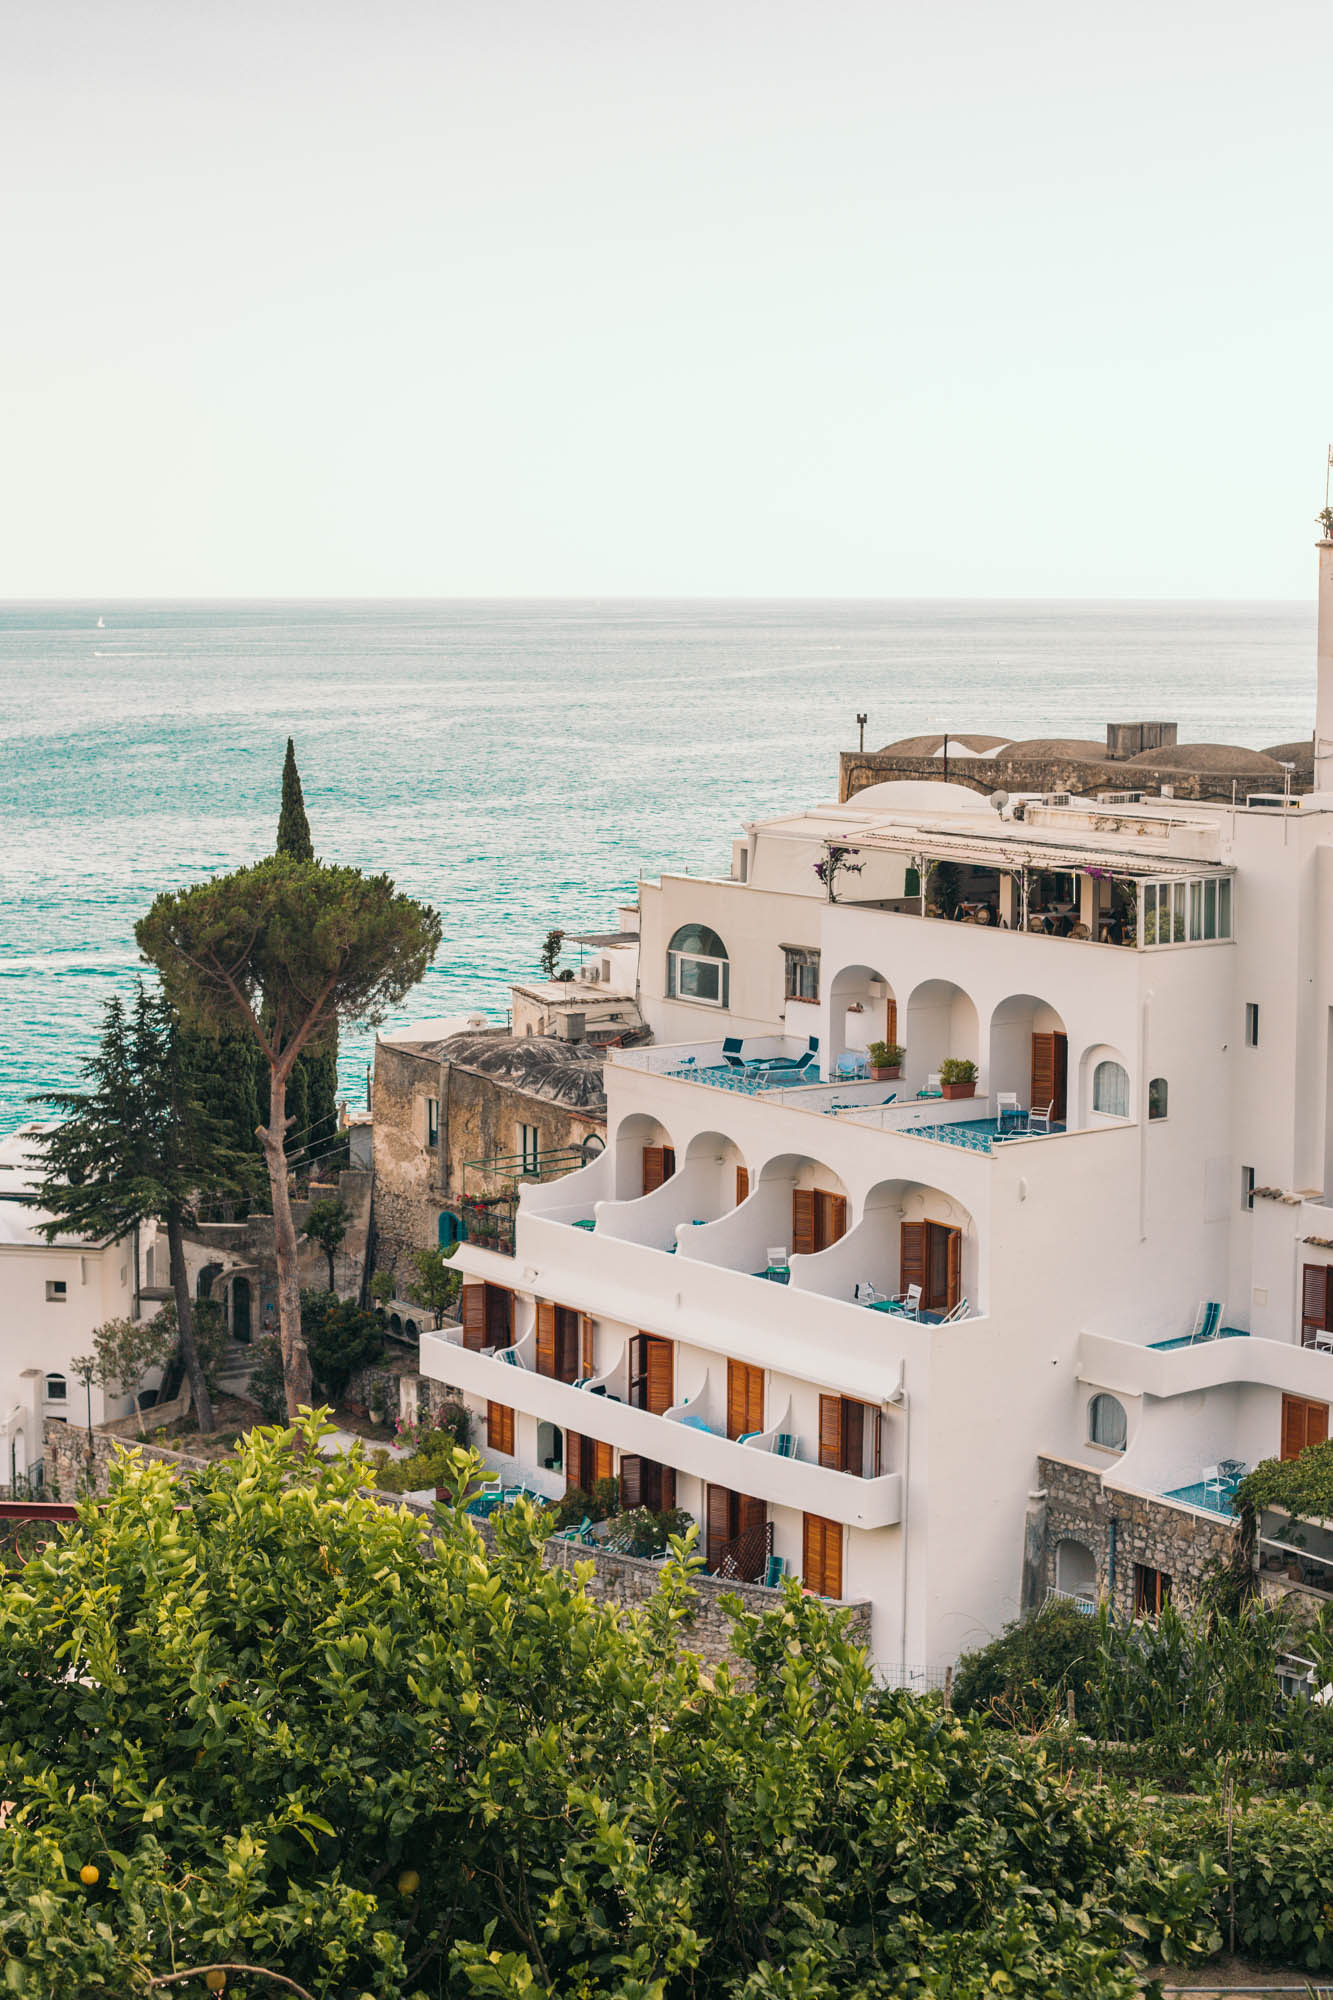 Roadtripping the Amalfi coast – Positano